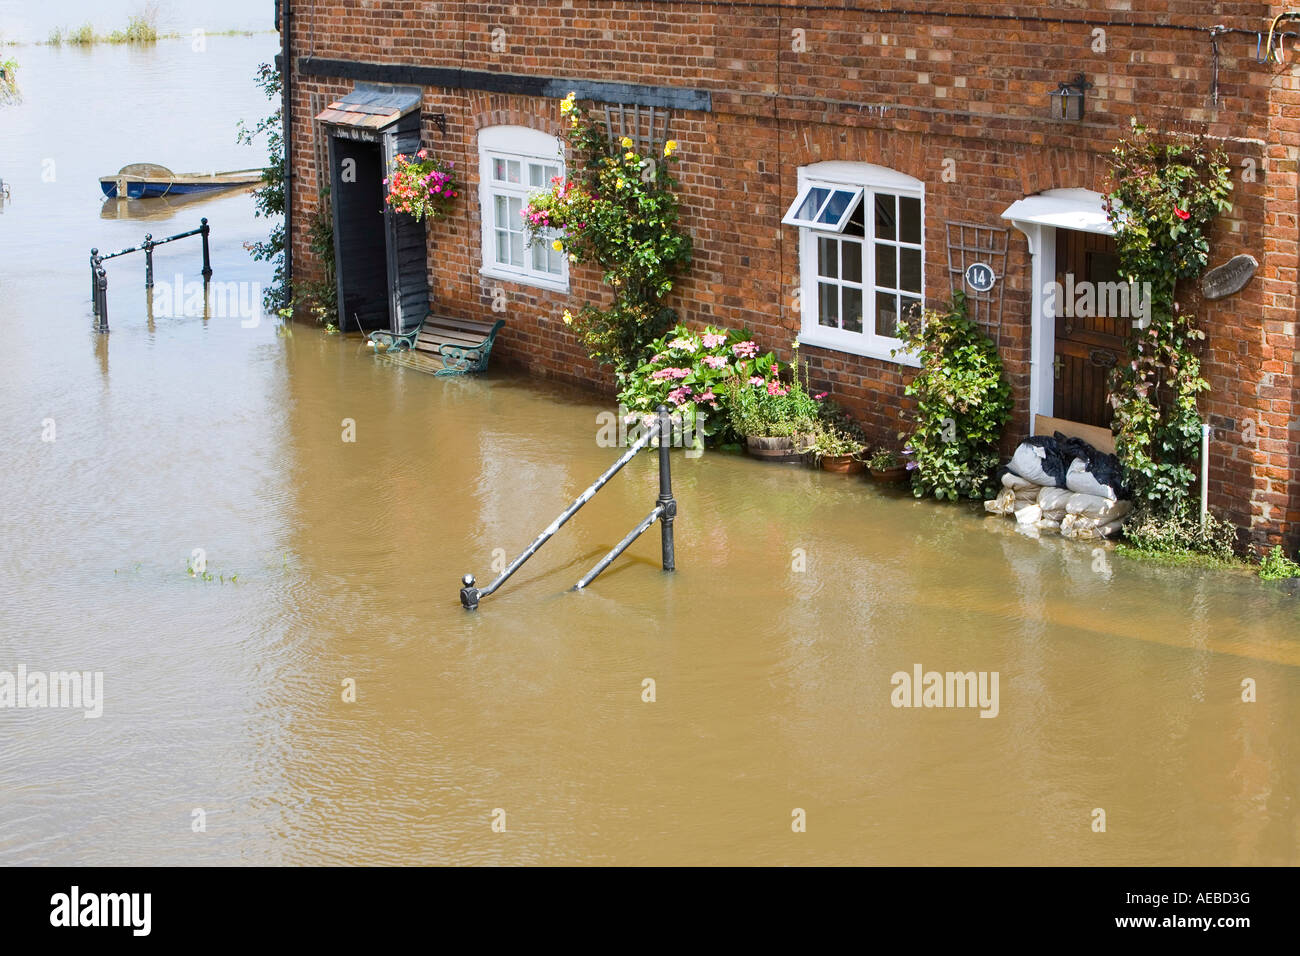 Houses flooded in Tewkesbury - Stock Image